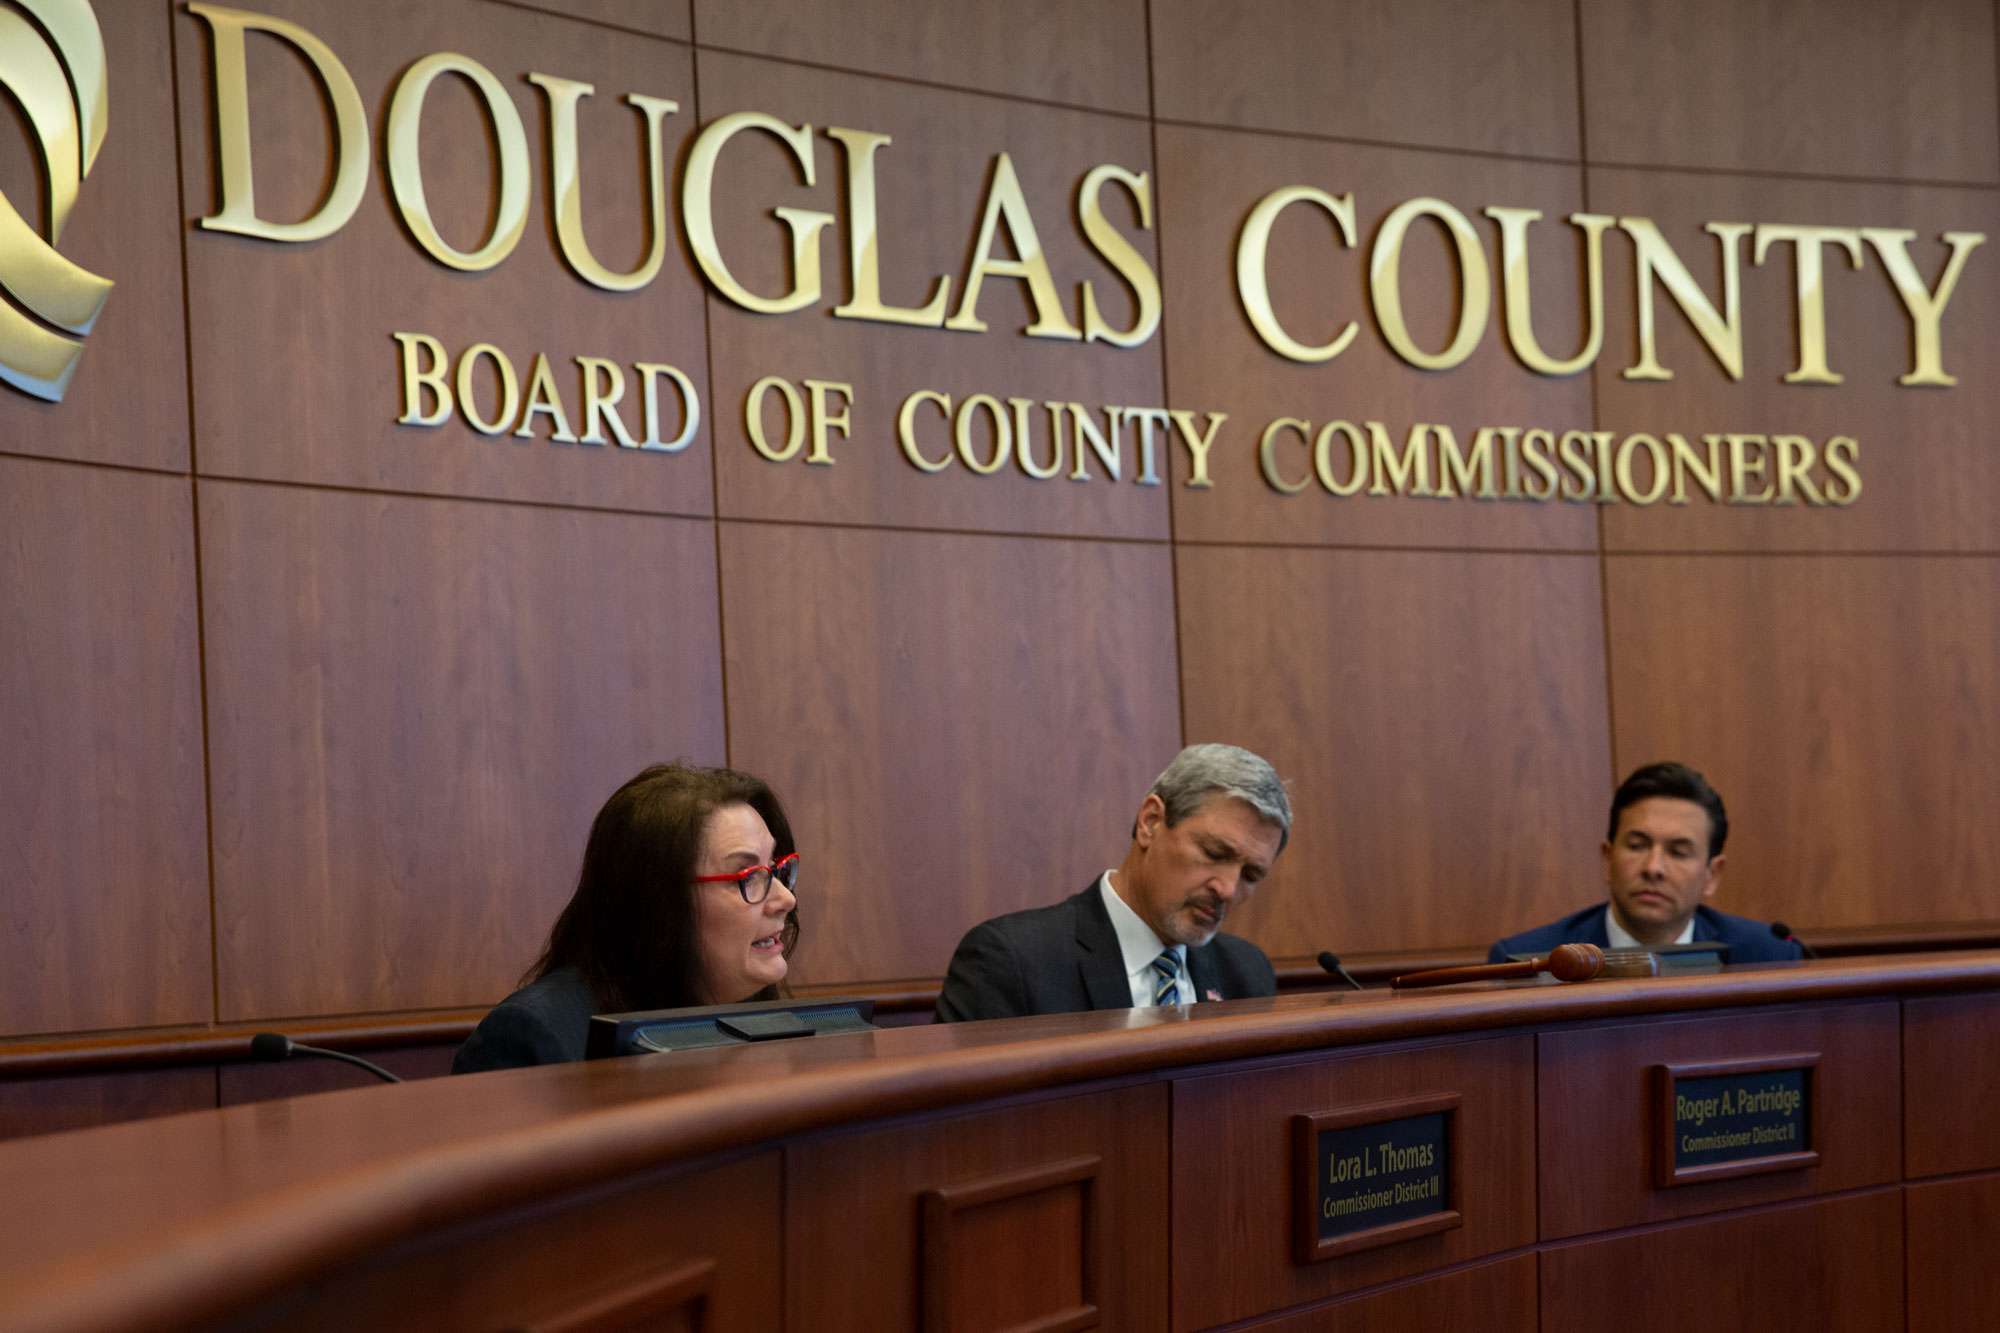 <p>Douglas County CommissionersLora Thomas, Roger Partridge and Abe Laydonat a Monday, May 13, meeting to discuss a budget proposal to fund school safety.</p>